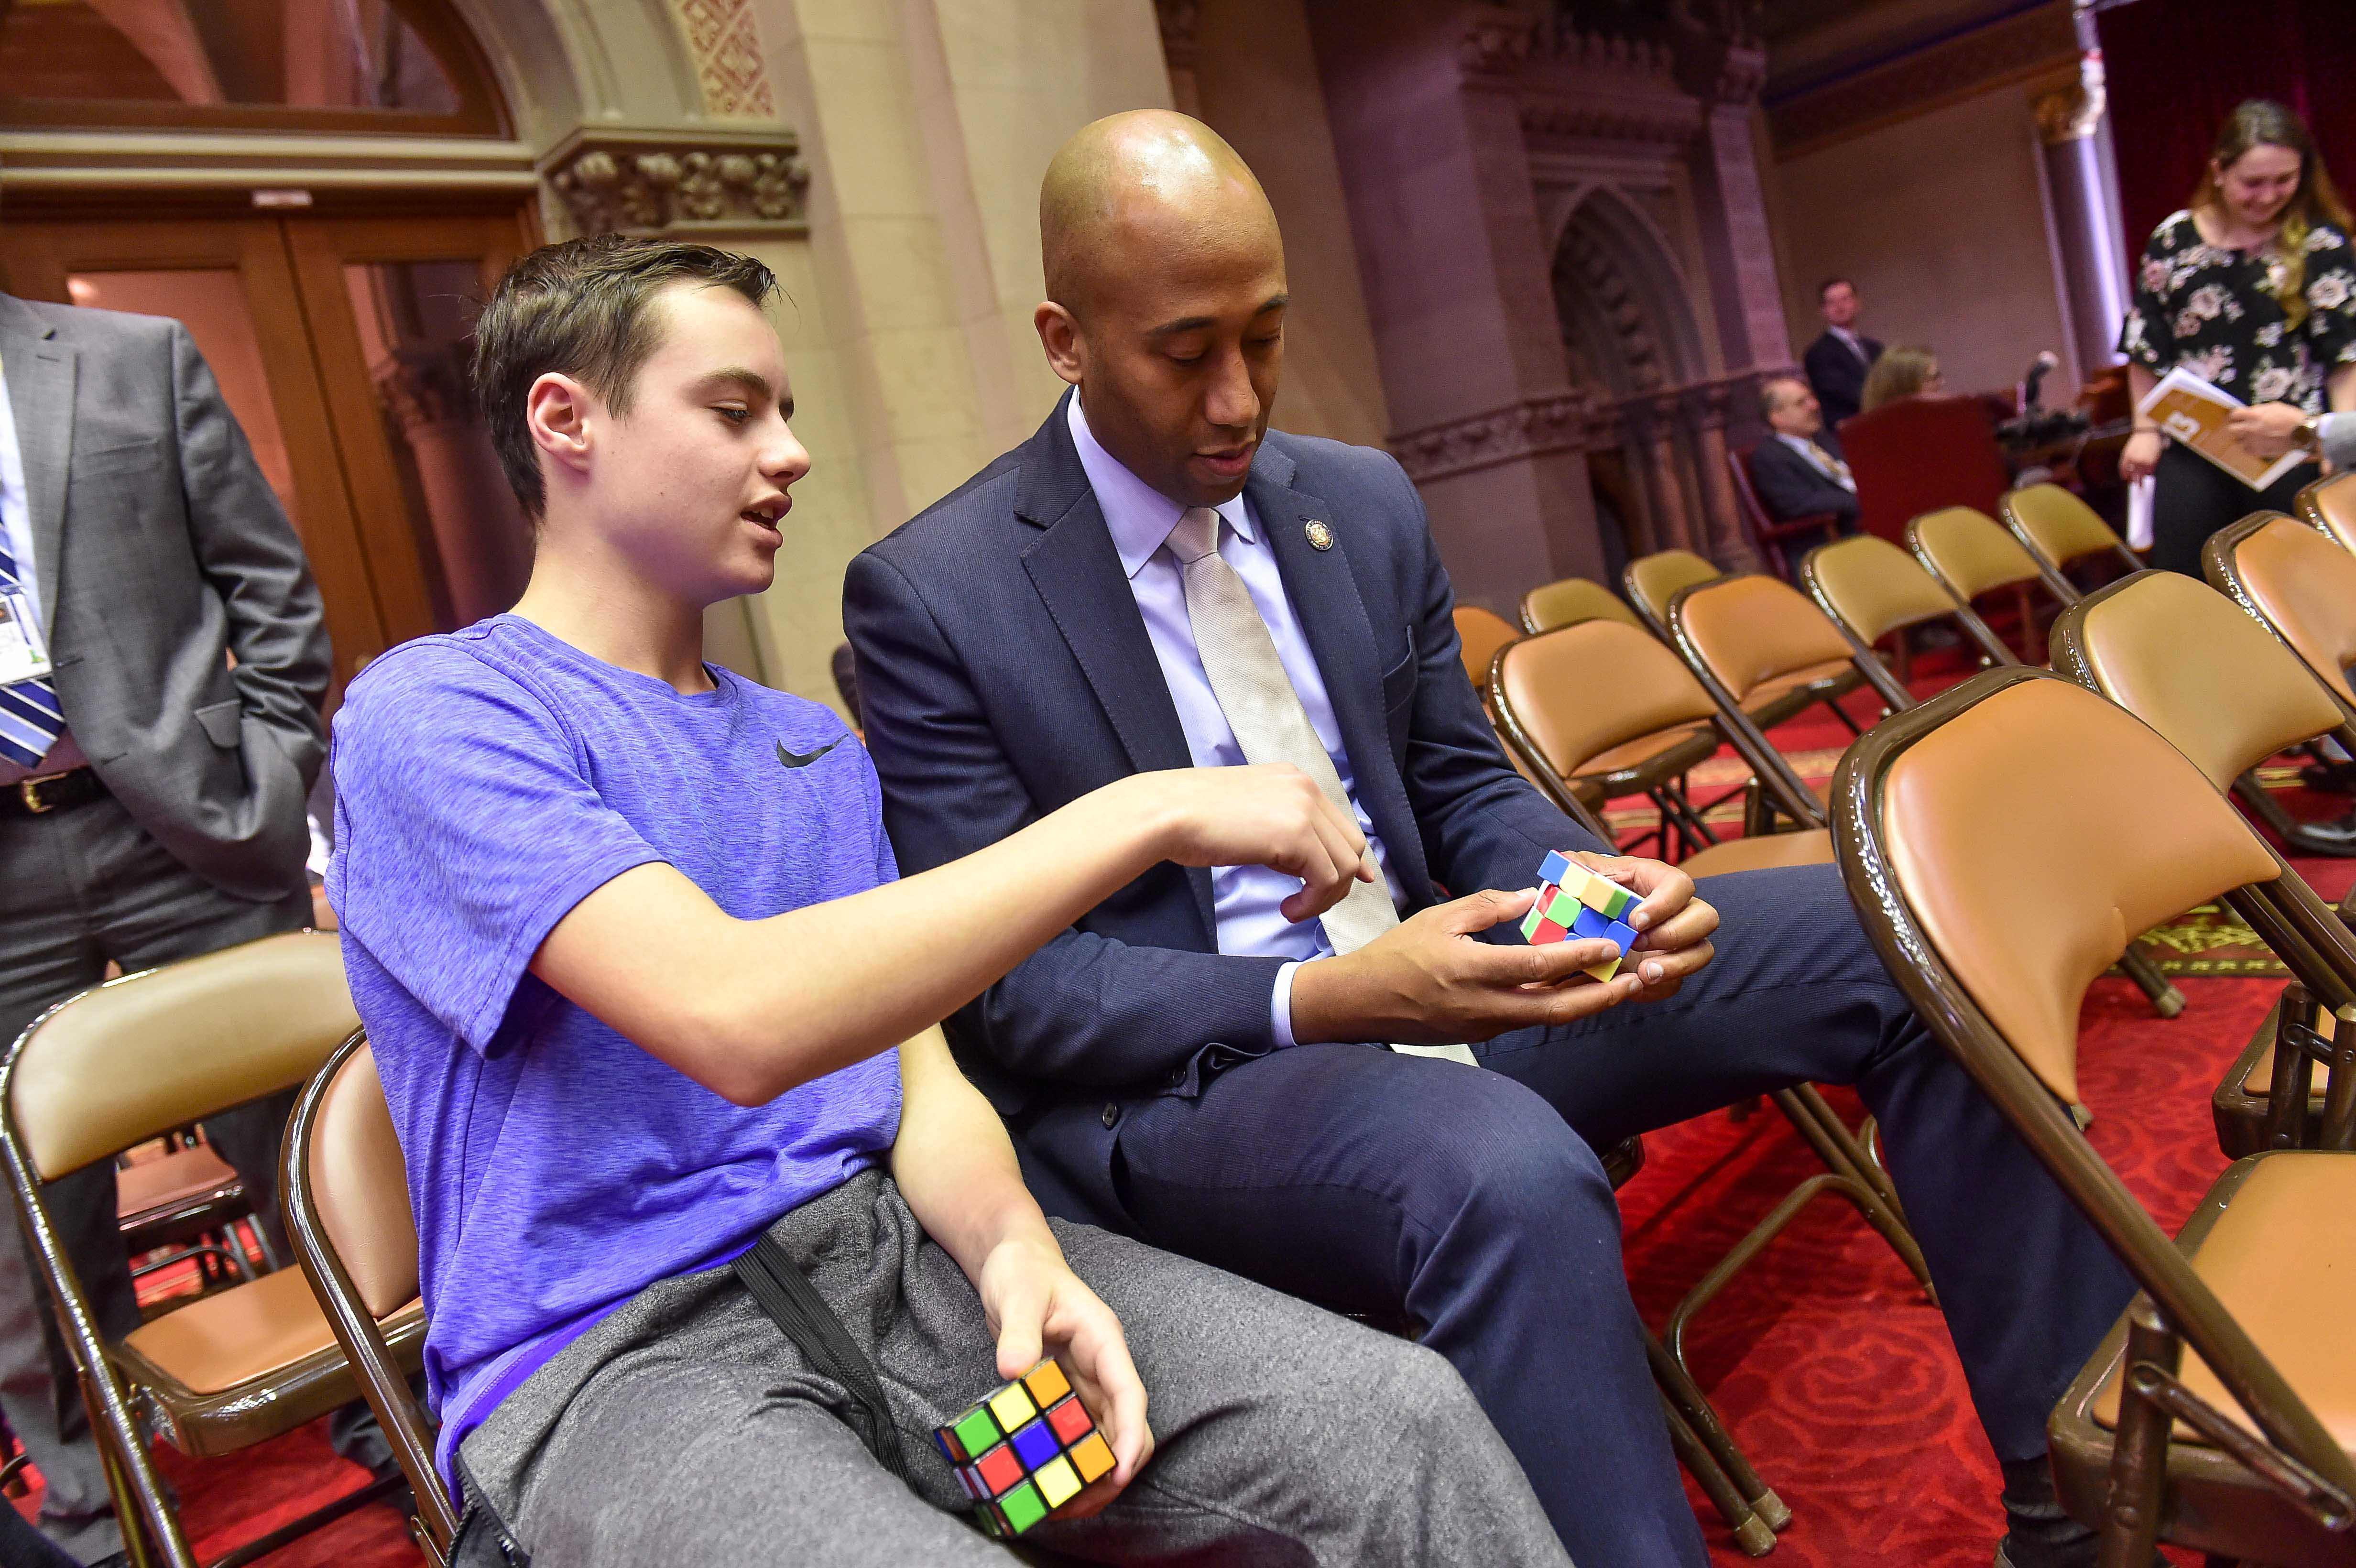 Assembly member Vanel bonding over Rubik's cubes